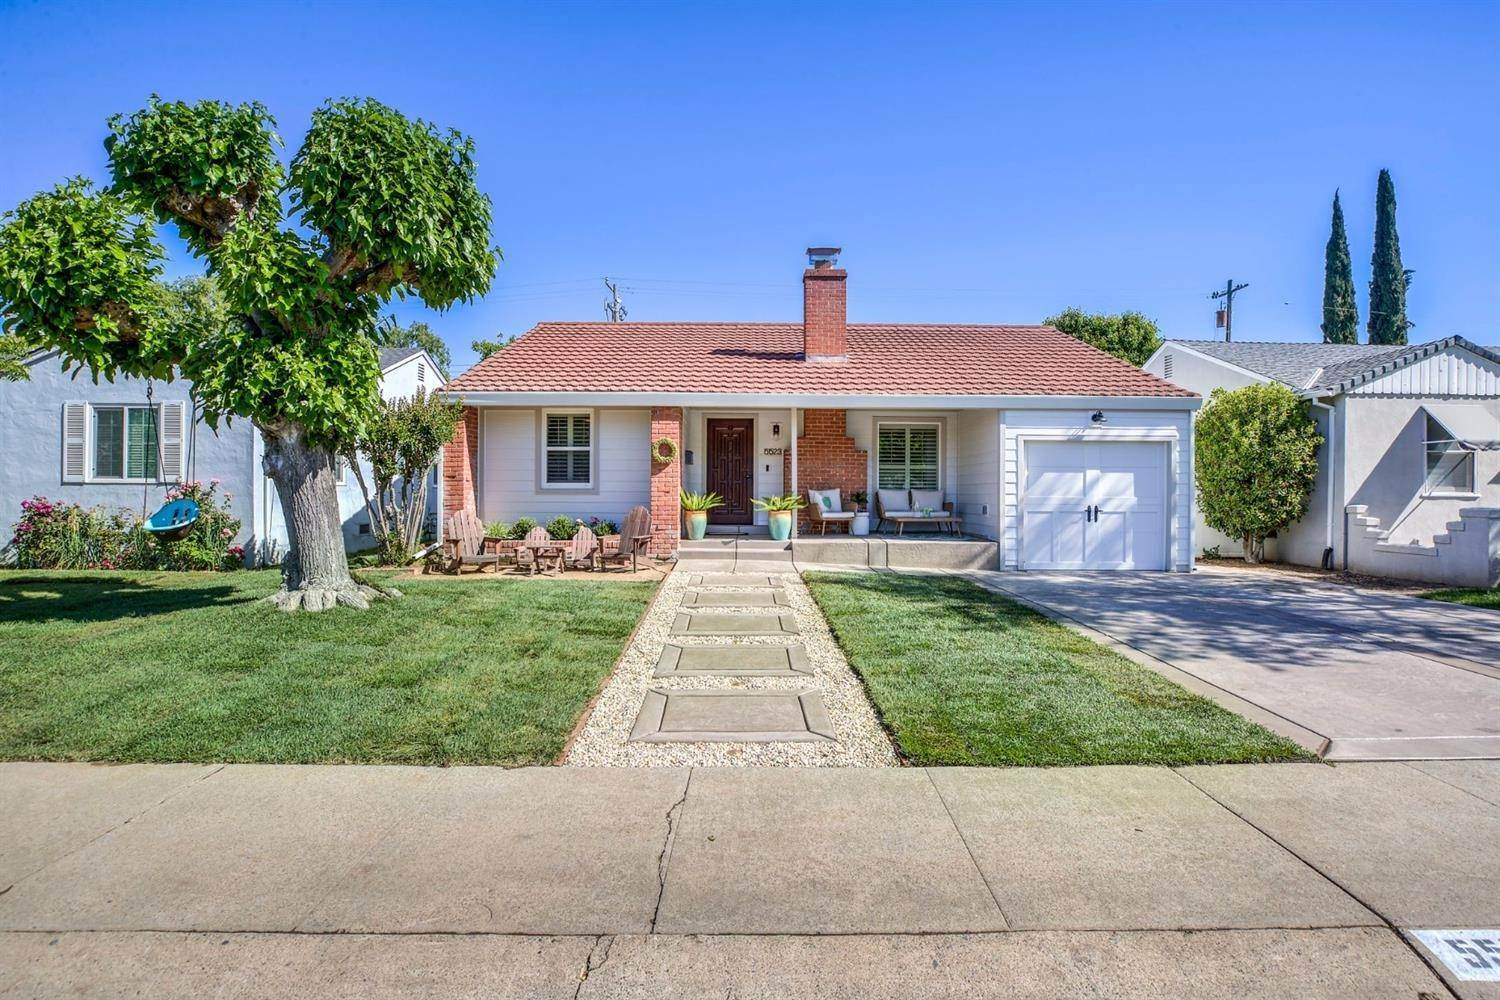 Single Family Homes for Active at 5523 C Street Sacramento, California 95819 United States